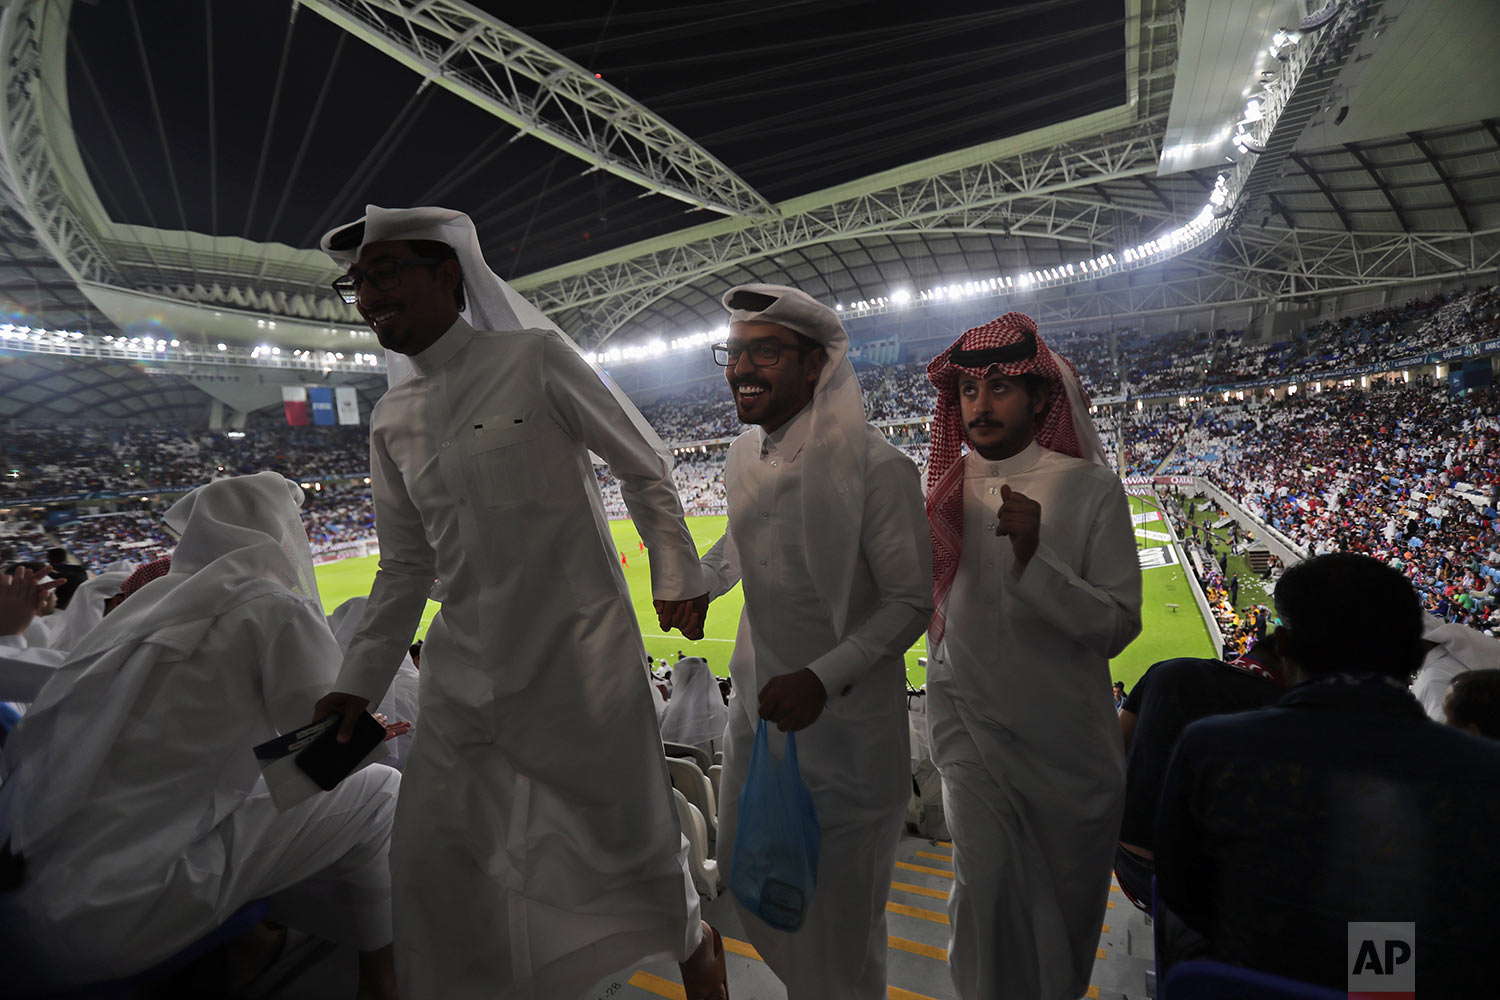 In this Thursday, May 16, 2019 photo, football fans leave their seats during the final match half-time at the inauguration ceremony of the Al Wakrah stadium in Doha, Qatar. (AP Photo/Kamran Jebreili)